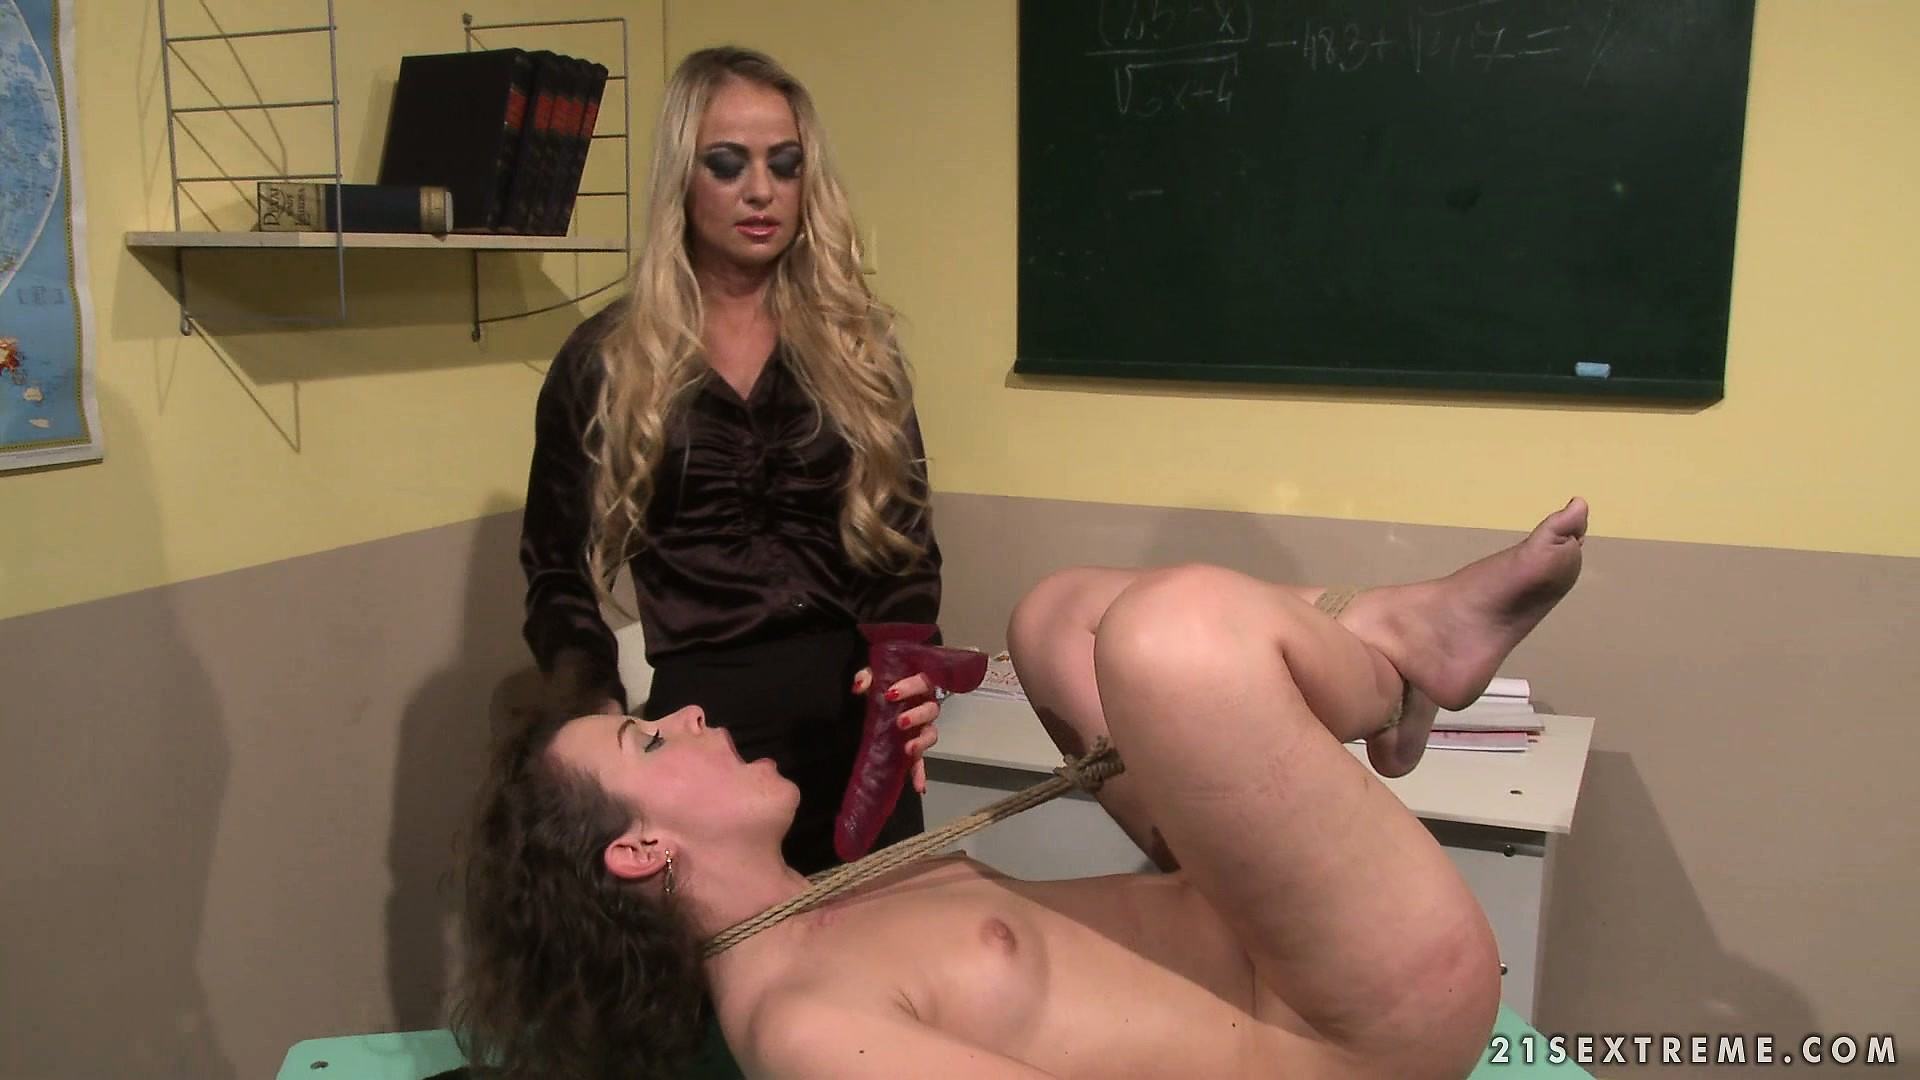 Porn Tube of Evil School Teacher Devices Her Own Method For Punishing Her Students